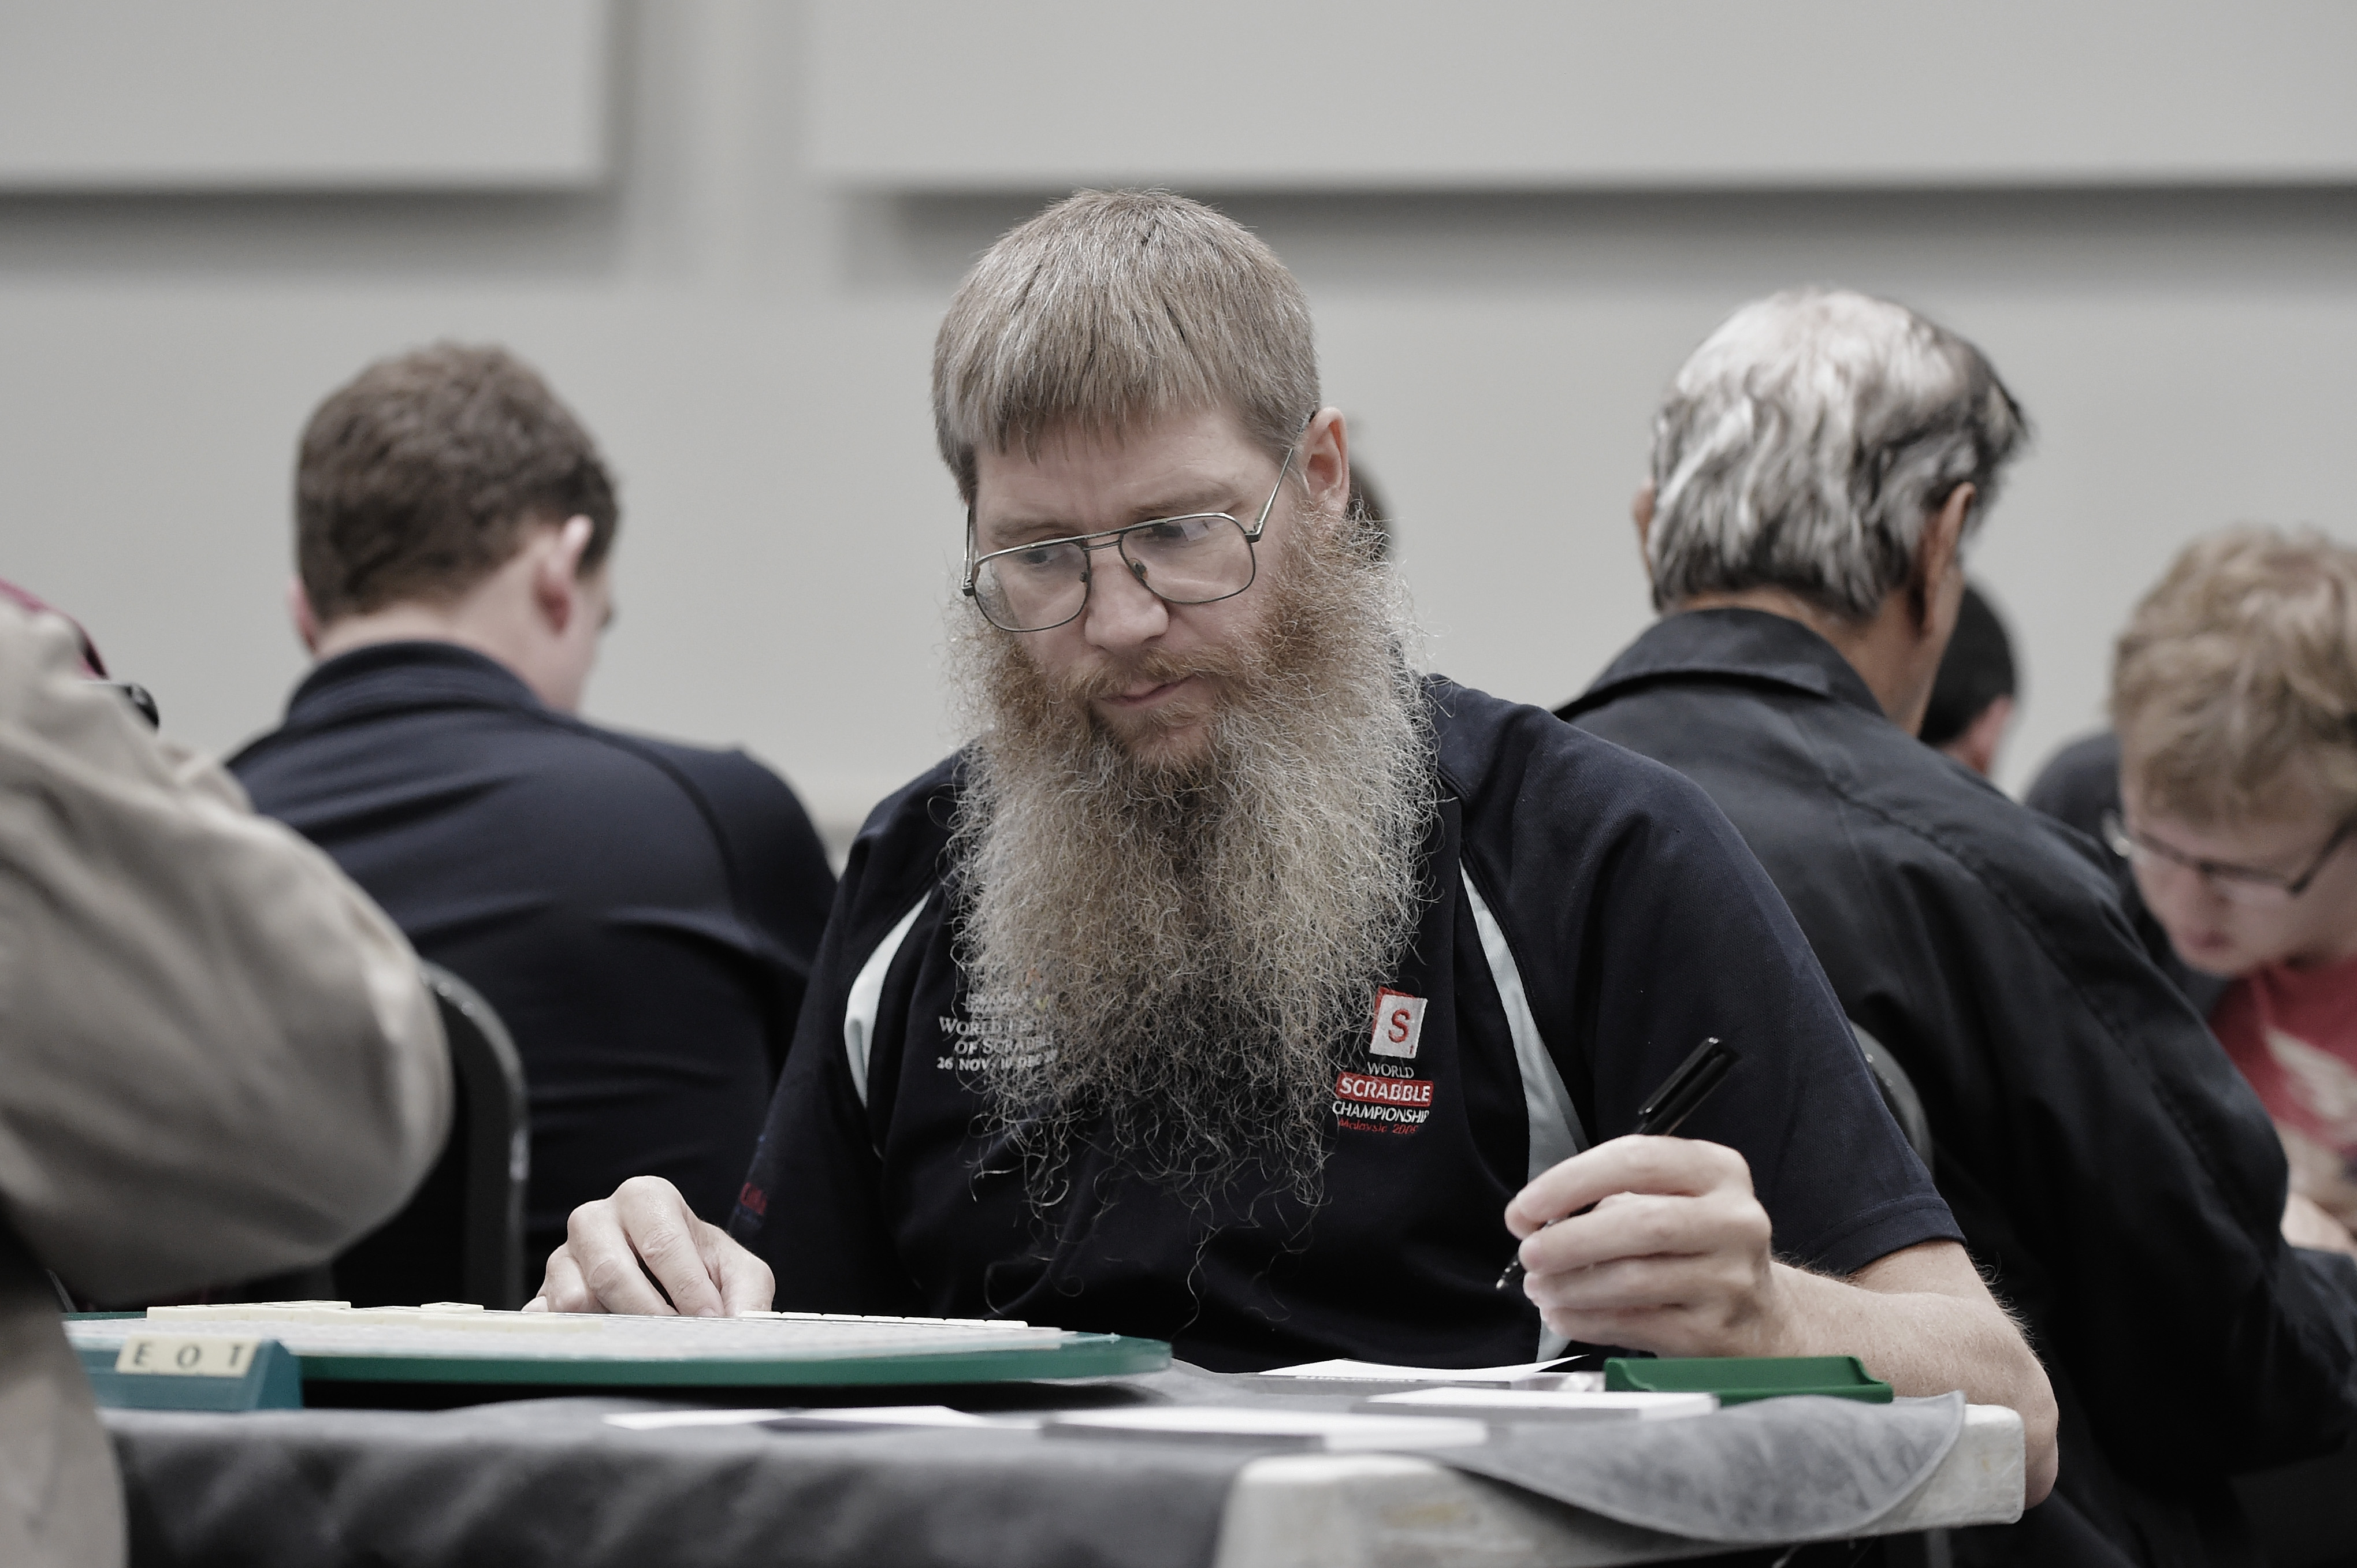 Current World Champion Nigel Richards at the Scrabble Champions Tournament, during the Mind Sports International World Championships on November 19, 2014 in London, England.